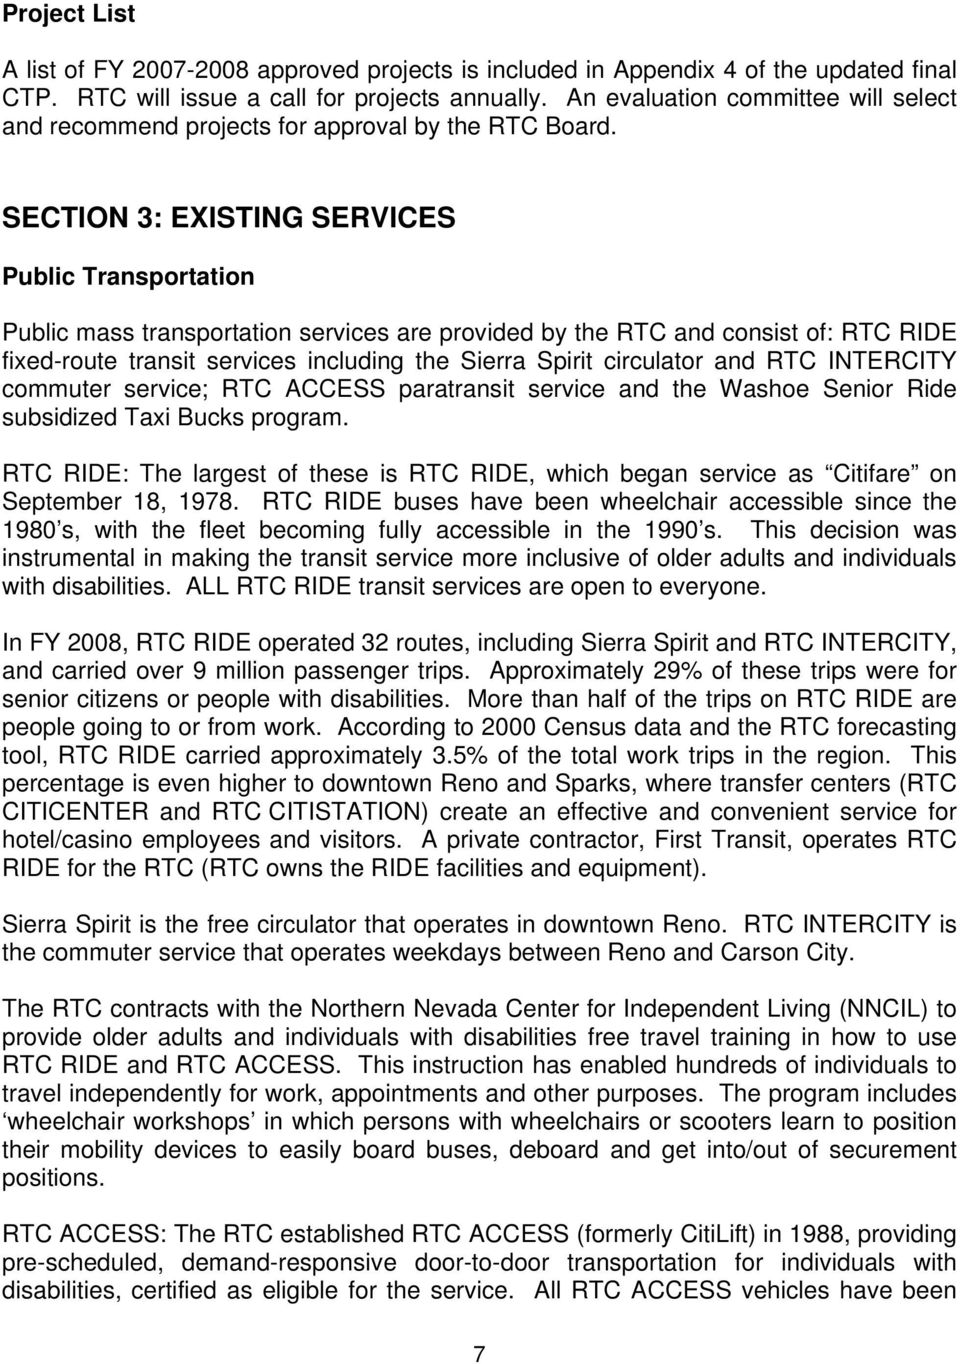 SECTION 3: EXISTING SERVICES Public Transportation Public mass transportation services are provided by the RTC and consist of: RTC RIDE fixed-route transit services including the Sierra Spirit